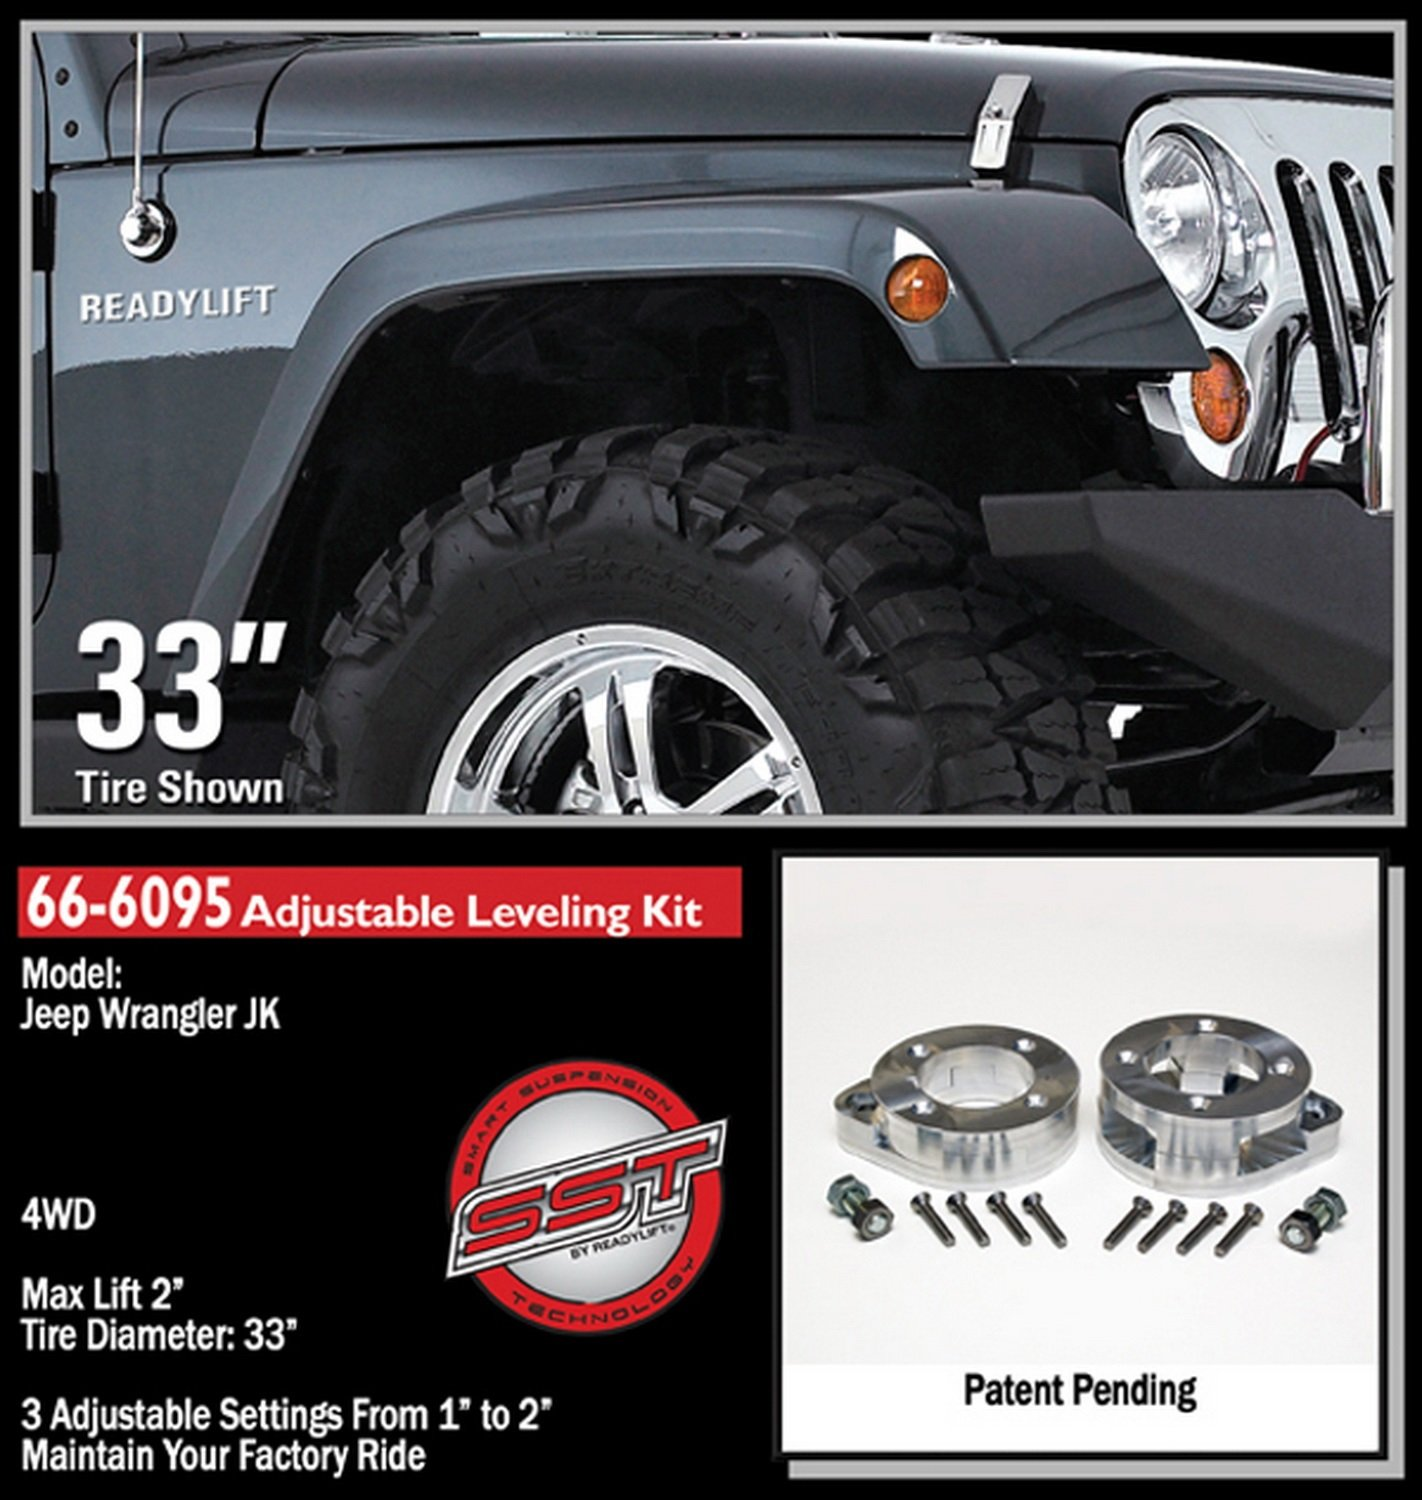 in talking who lemme jl houston and with about kits know wtf having lift finding get suggestions threads shop jeep a wrangler installed kit to time pics page helluva they re any knows forum